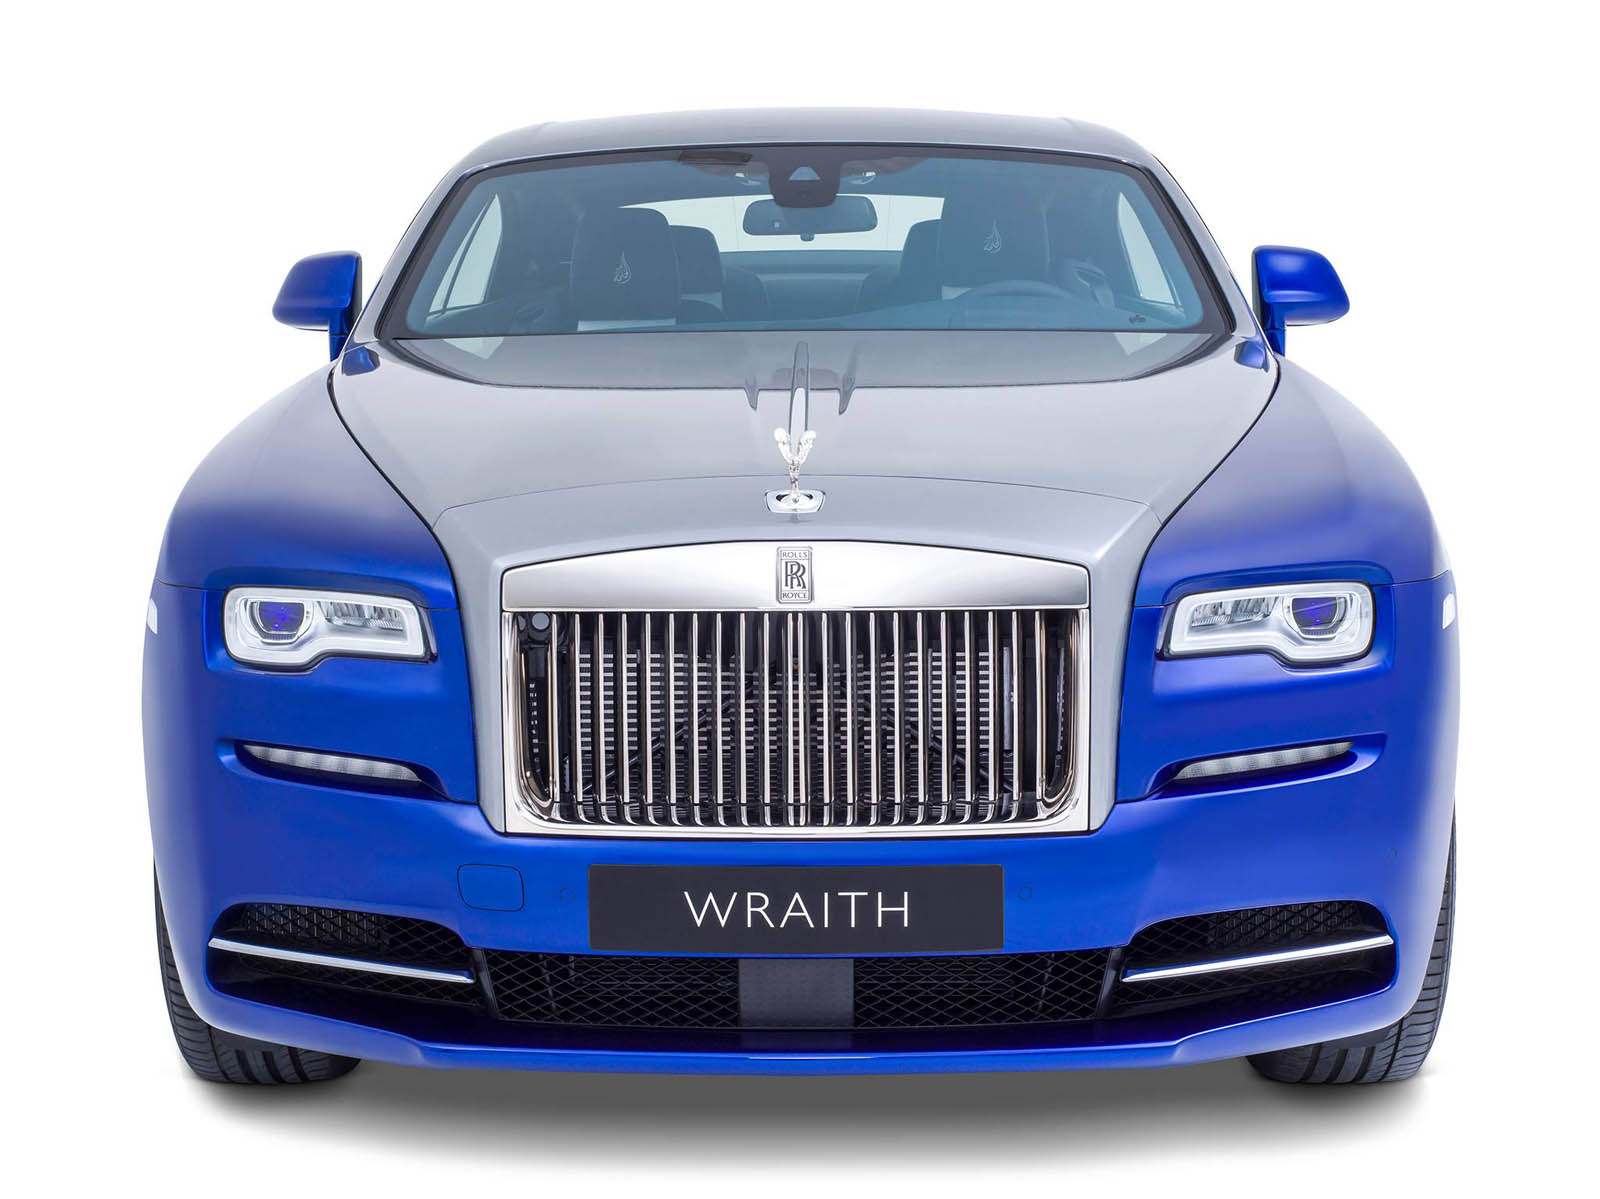 rolls-royce-Wraith-inspired-by-Sheikh-Zayed-Bridge-06